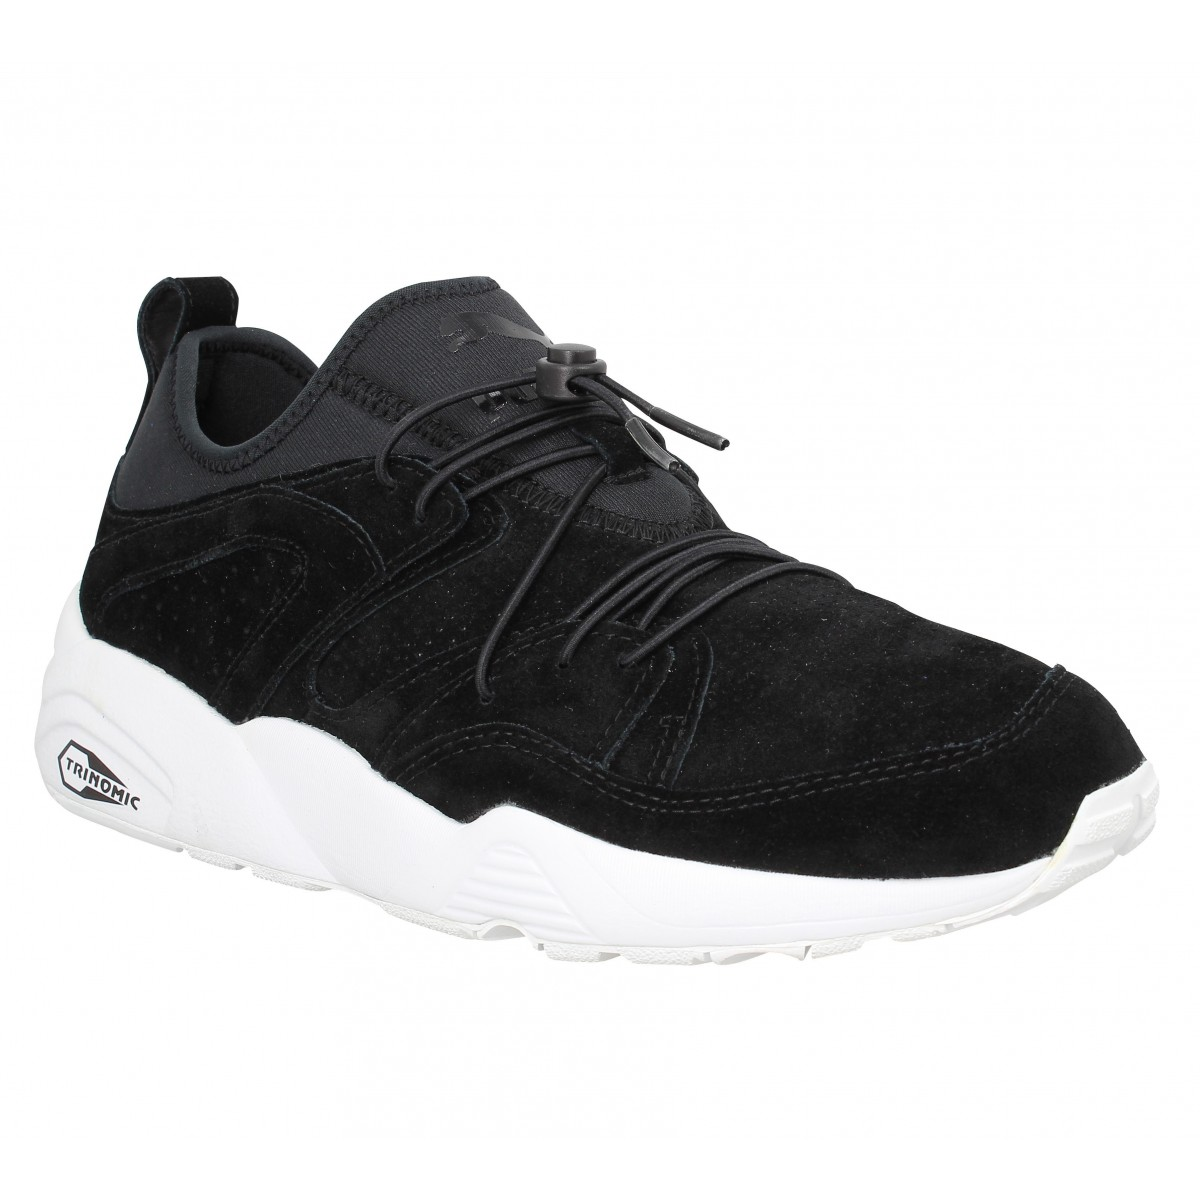 Baskets PUMA Blaze of Glory Noir